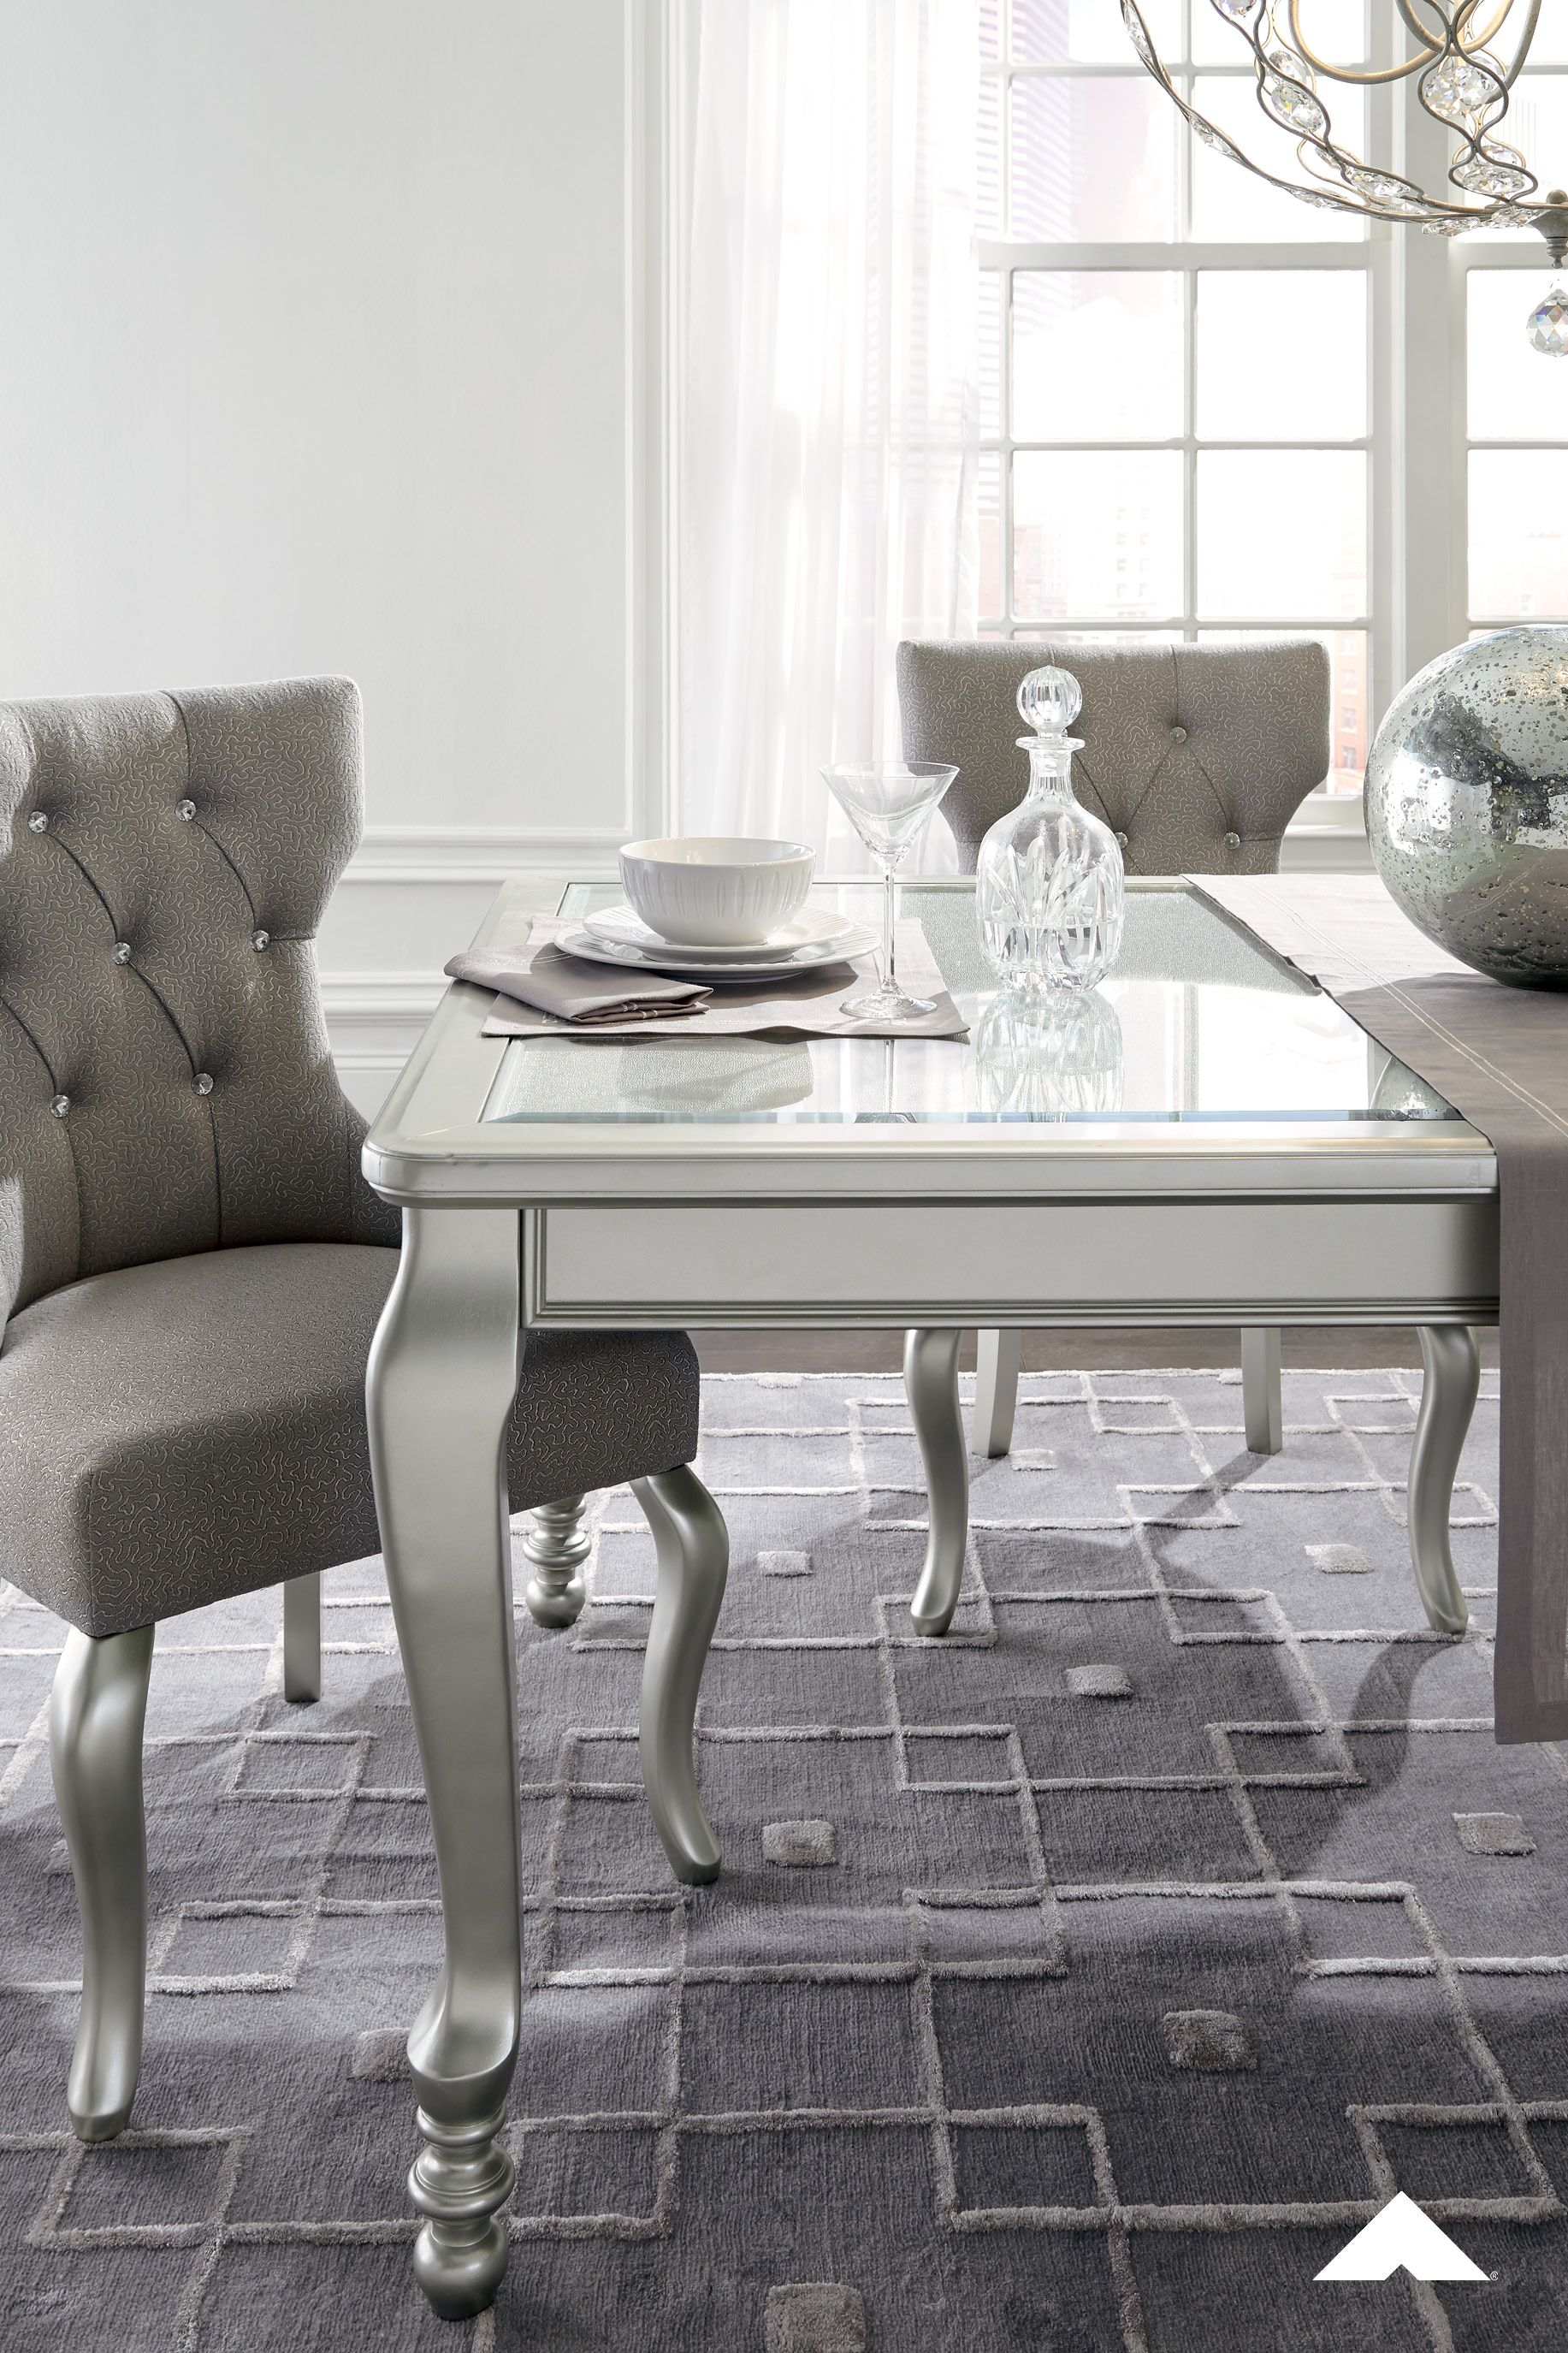 Coralayne silverwhite dining upholstered chair this